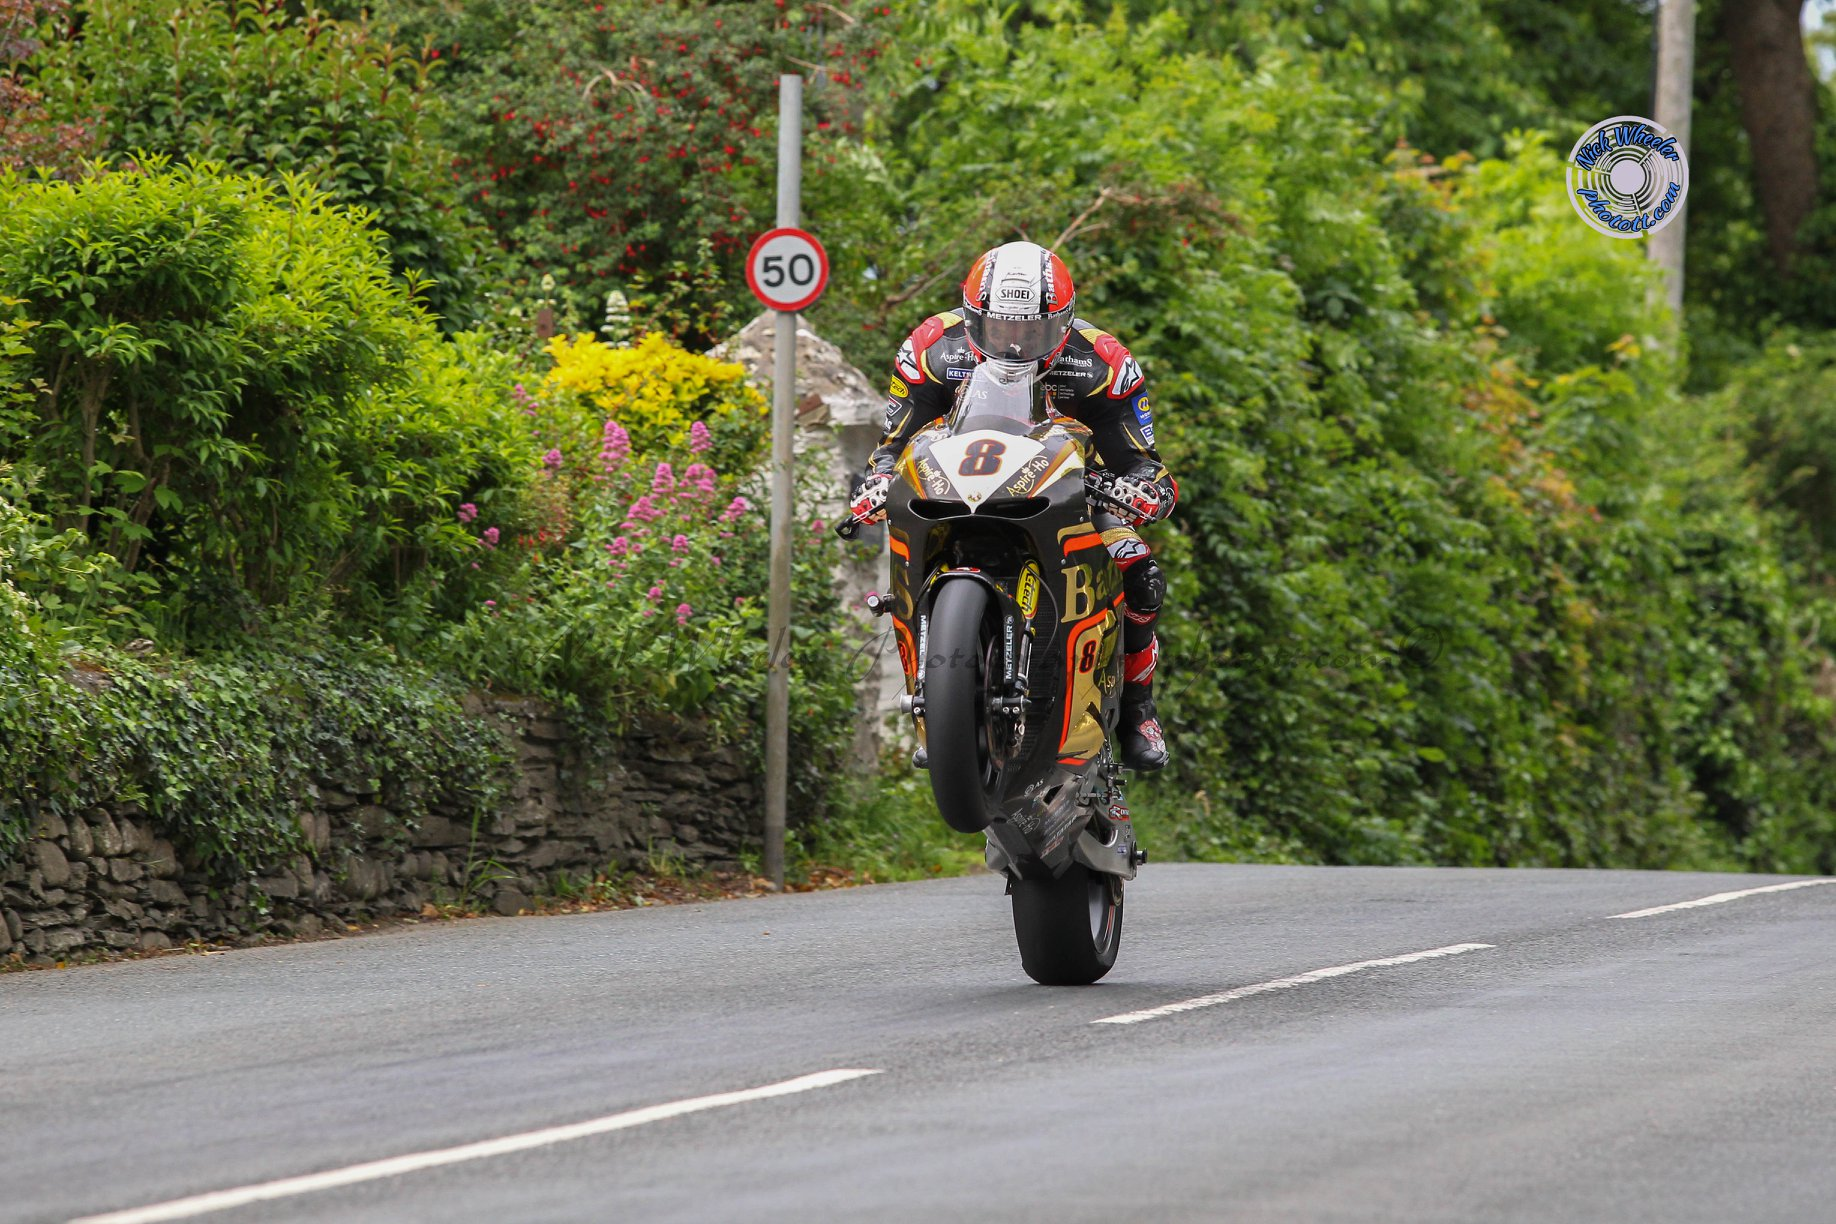 TT 2019: Rutter Concludes Latest TT Venture With Solid Top